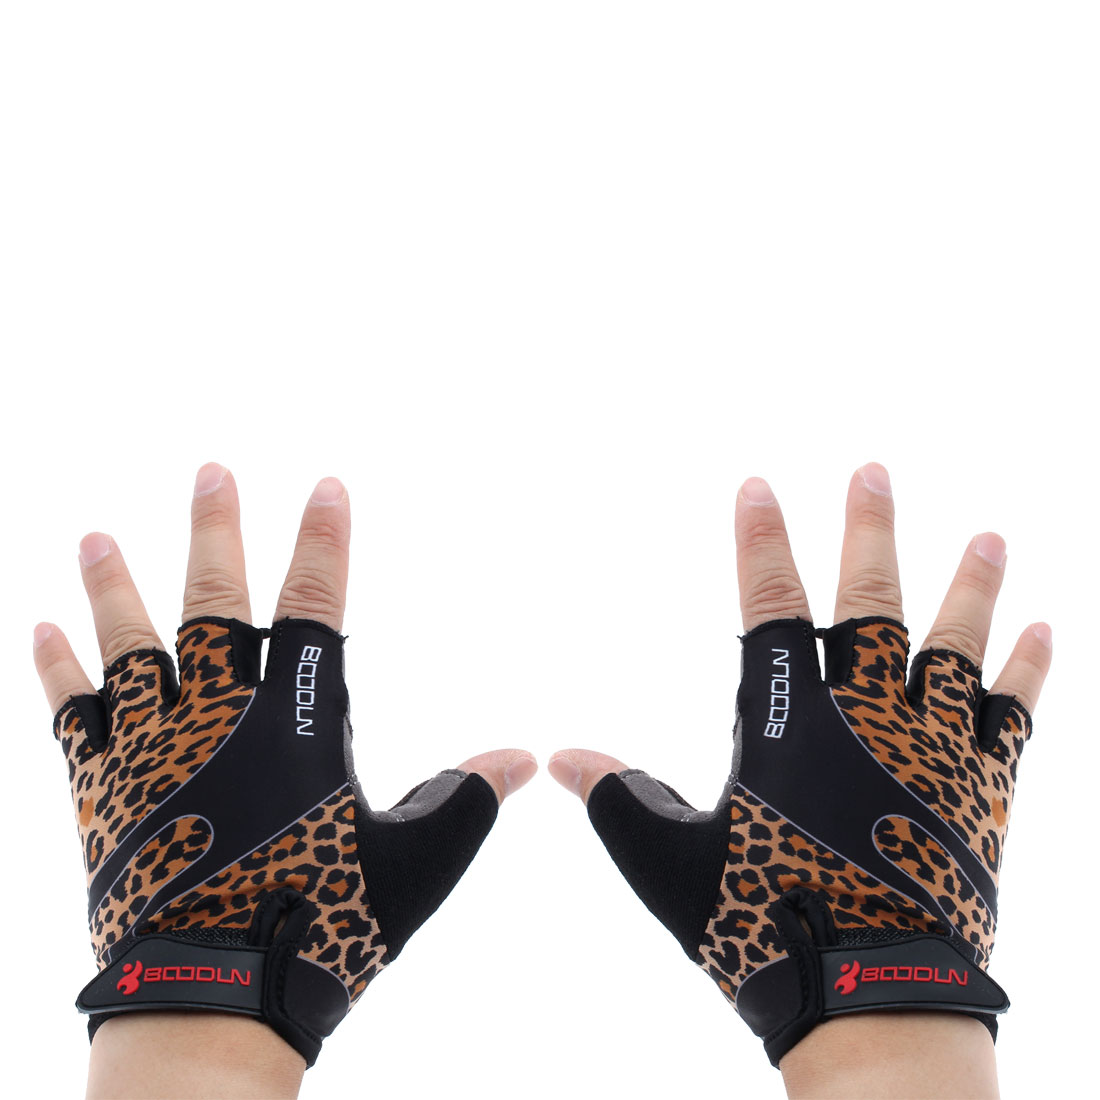 BOODUN Authorized Polyester Exercise Sports Lifting Training Bodybuilding Wrist Protector Half Finger Fitness Gloves Leopard Print S Pair